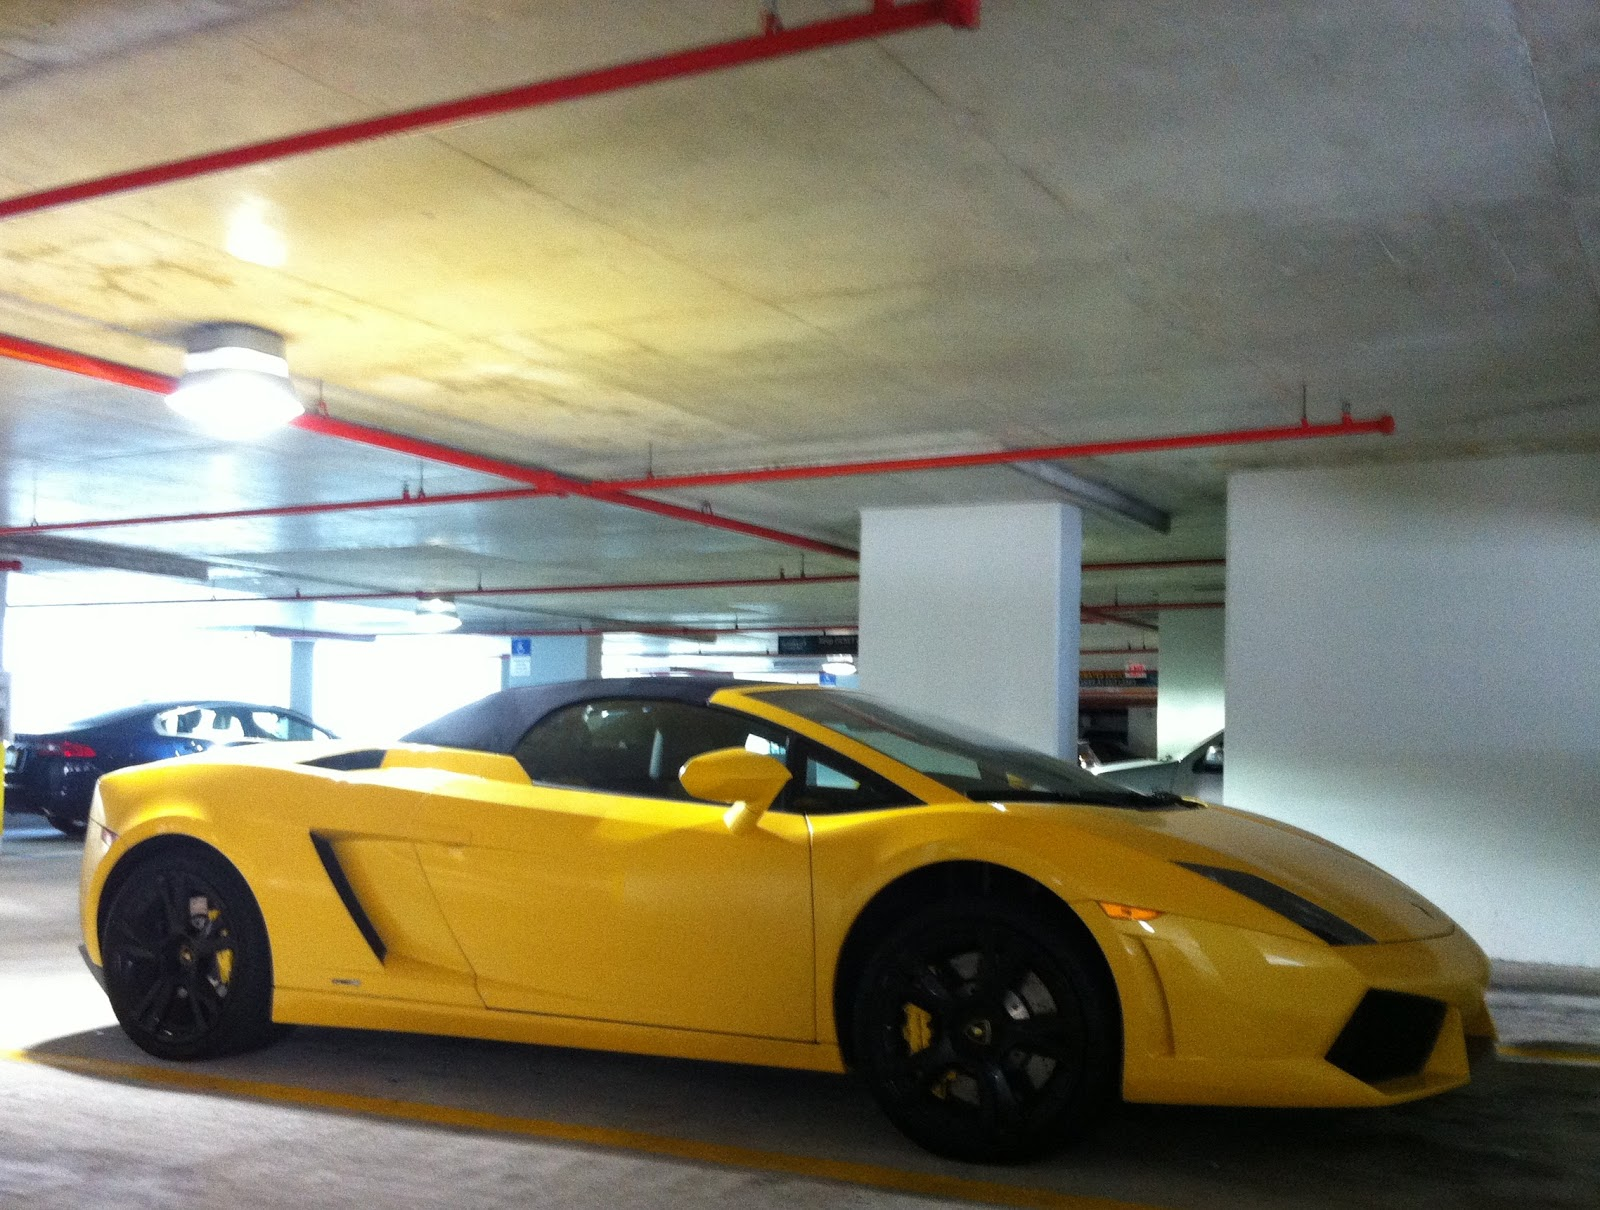 Lamborghini Gallardo Yellow And Black